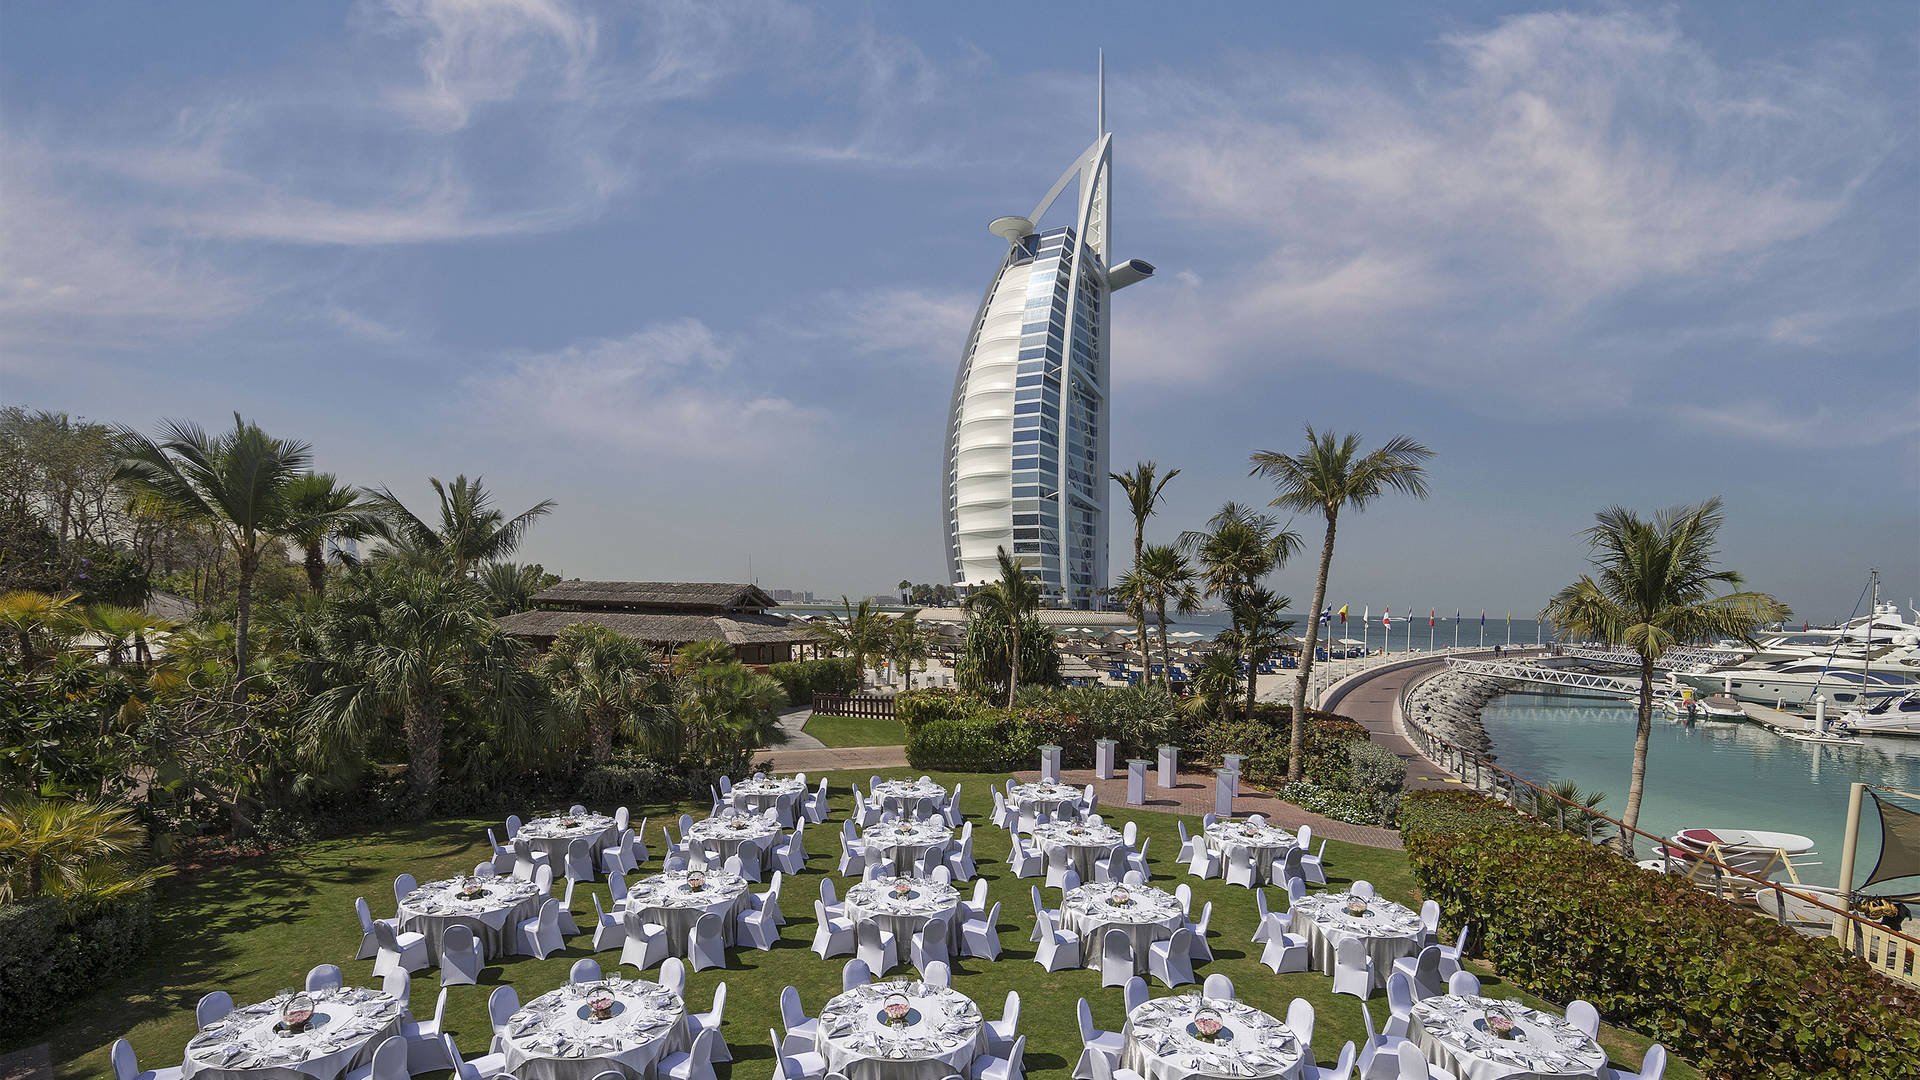 Sunset-Garden Dinner-Set-up at Jumeirah-Beach-Hotel